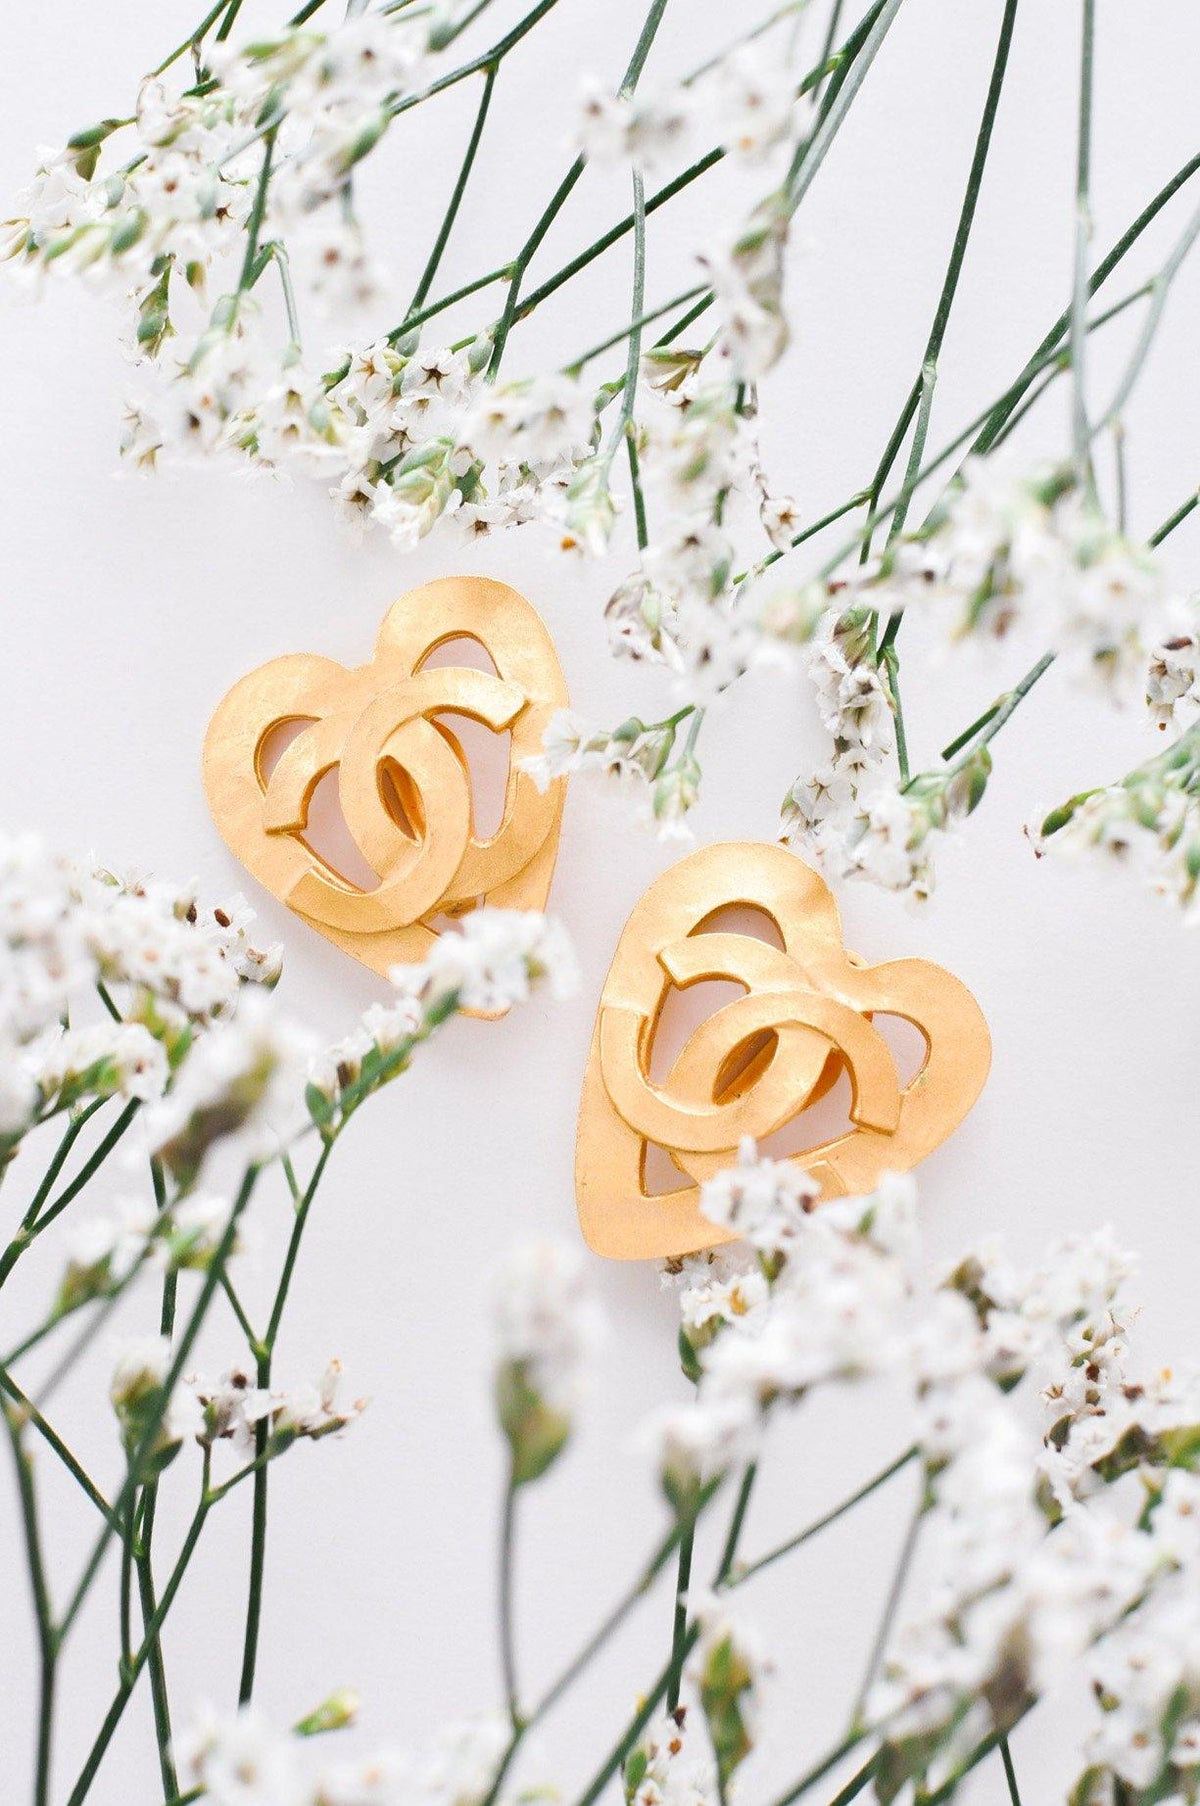 Vintage Chanel Statement Heart Earrings from Sweet & Spark.